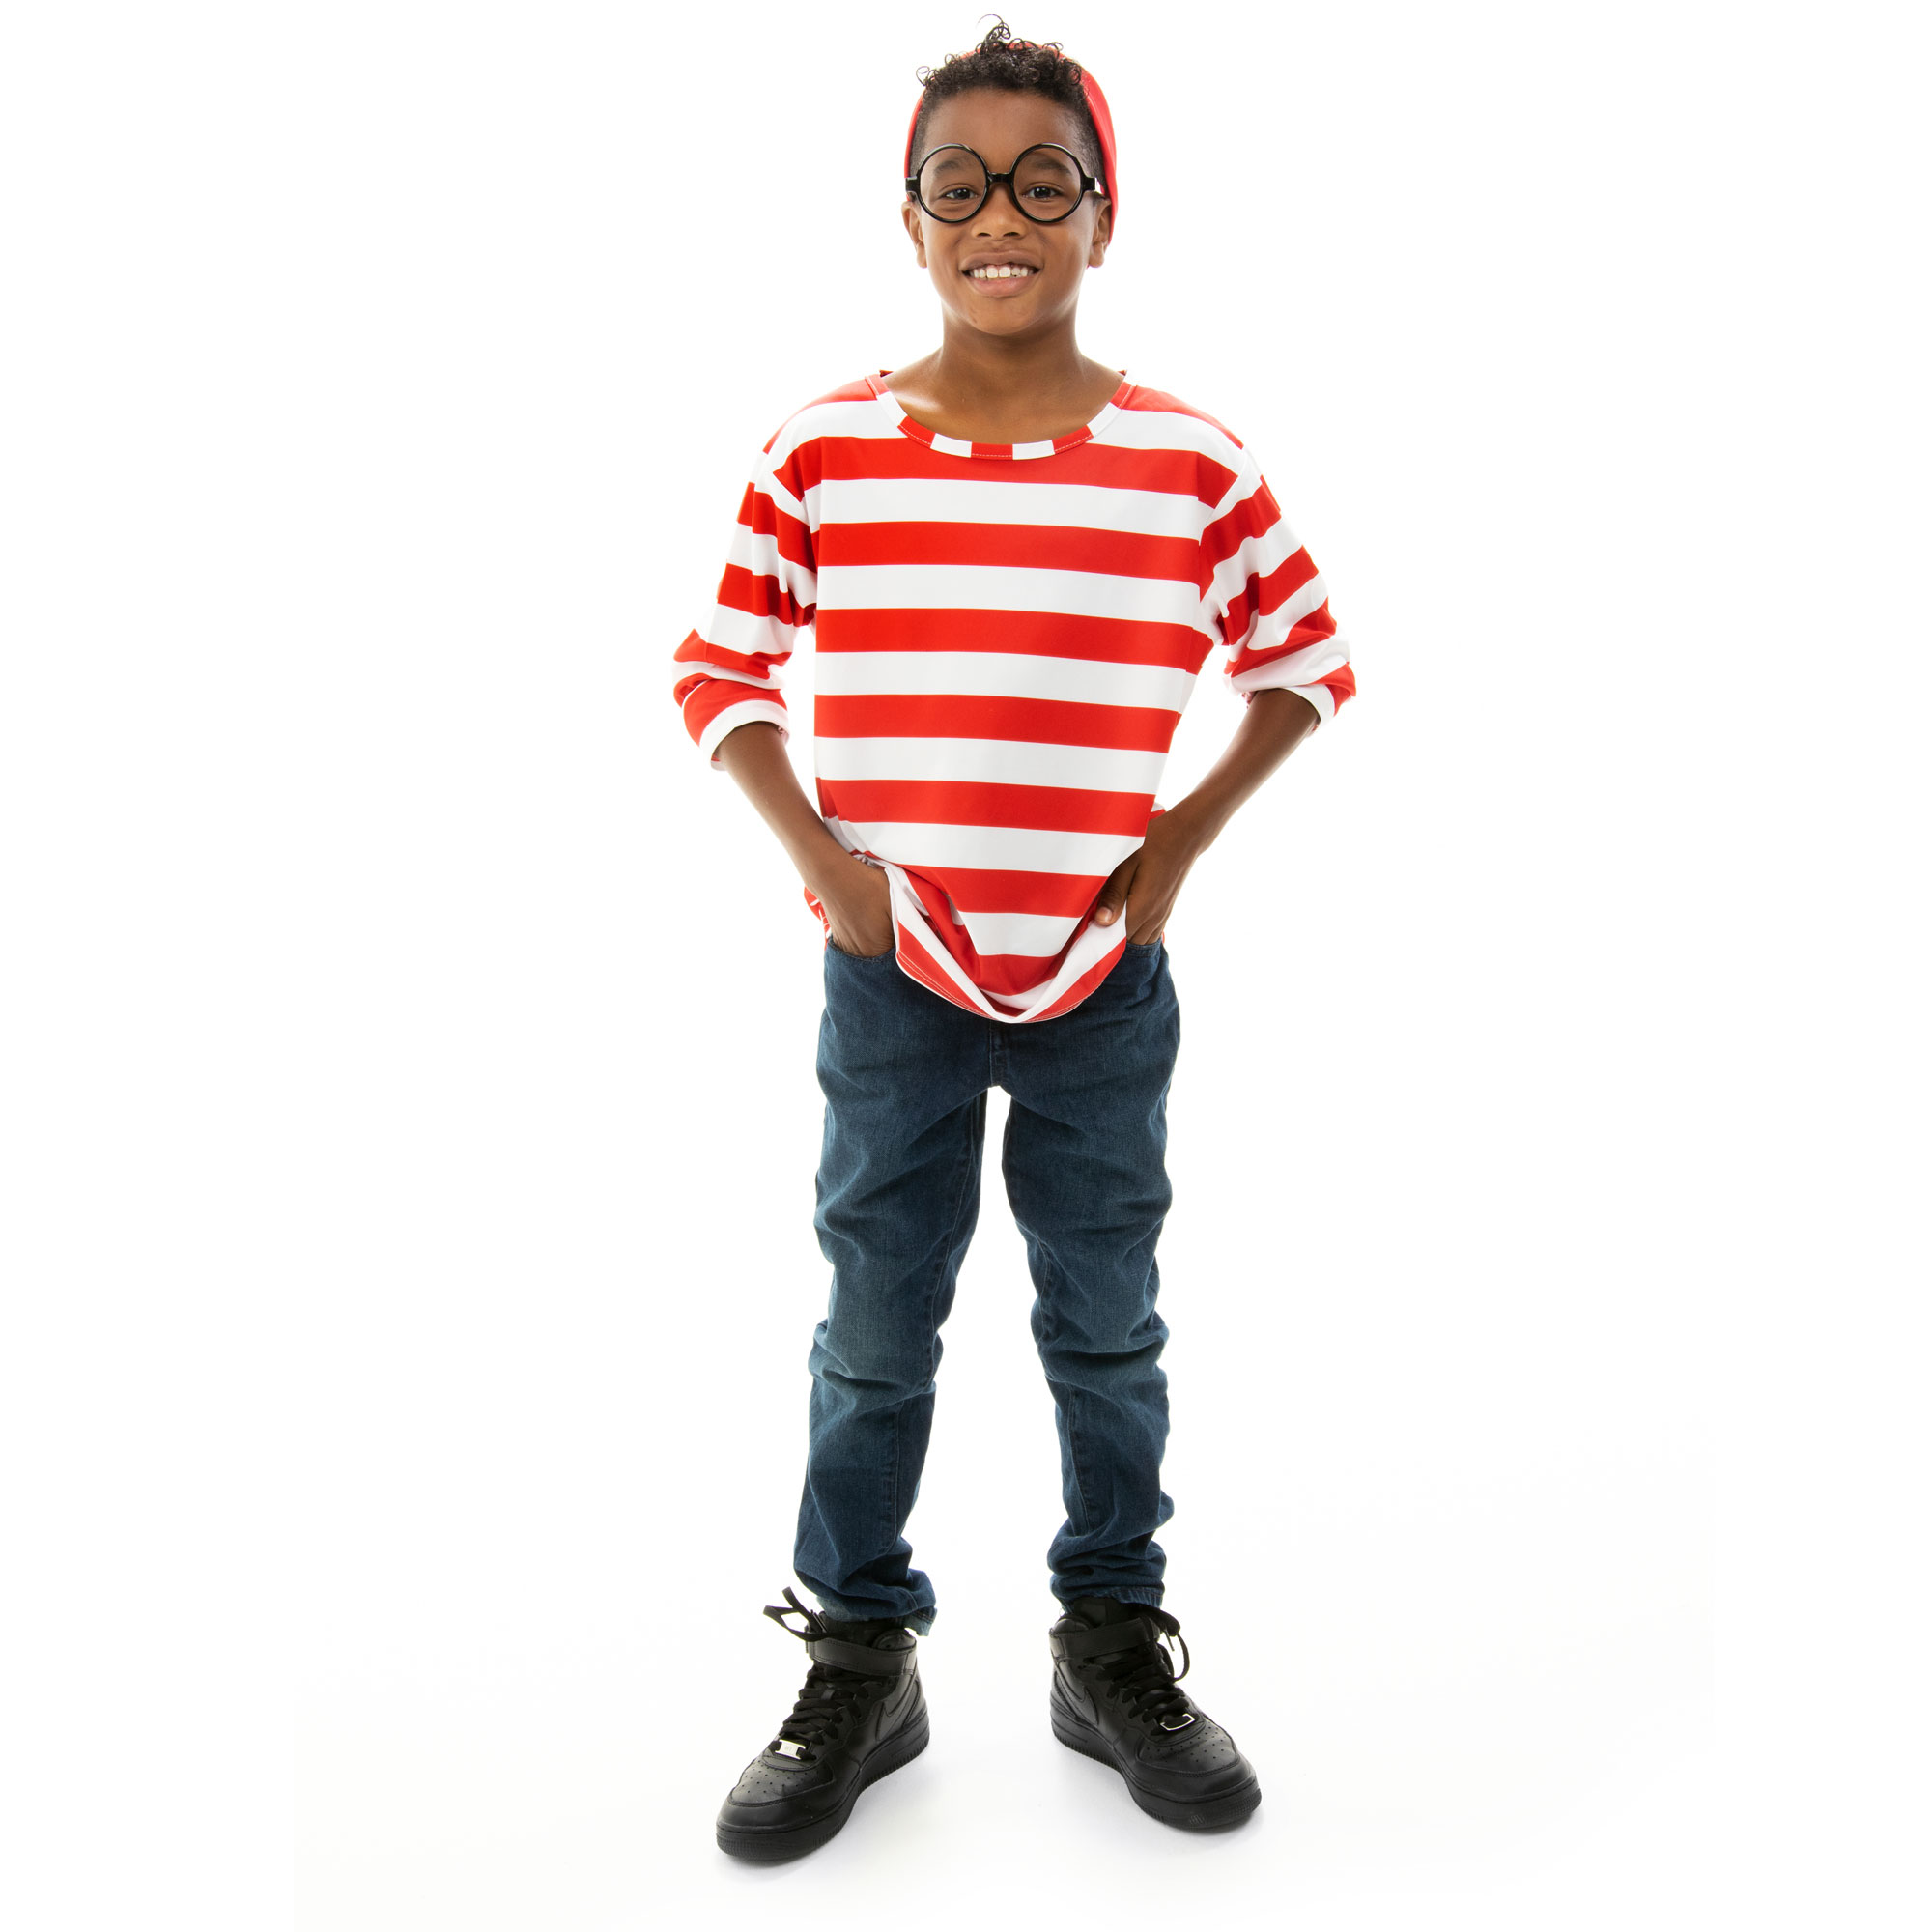 Where's Wally Halloween Costume - Child's Cosplay Outfit, M